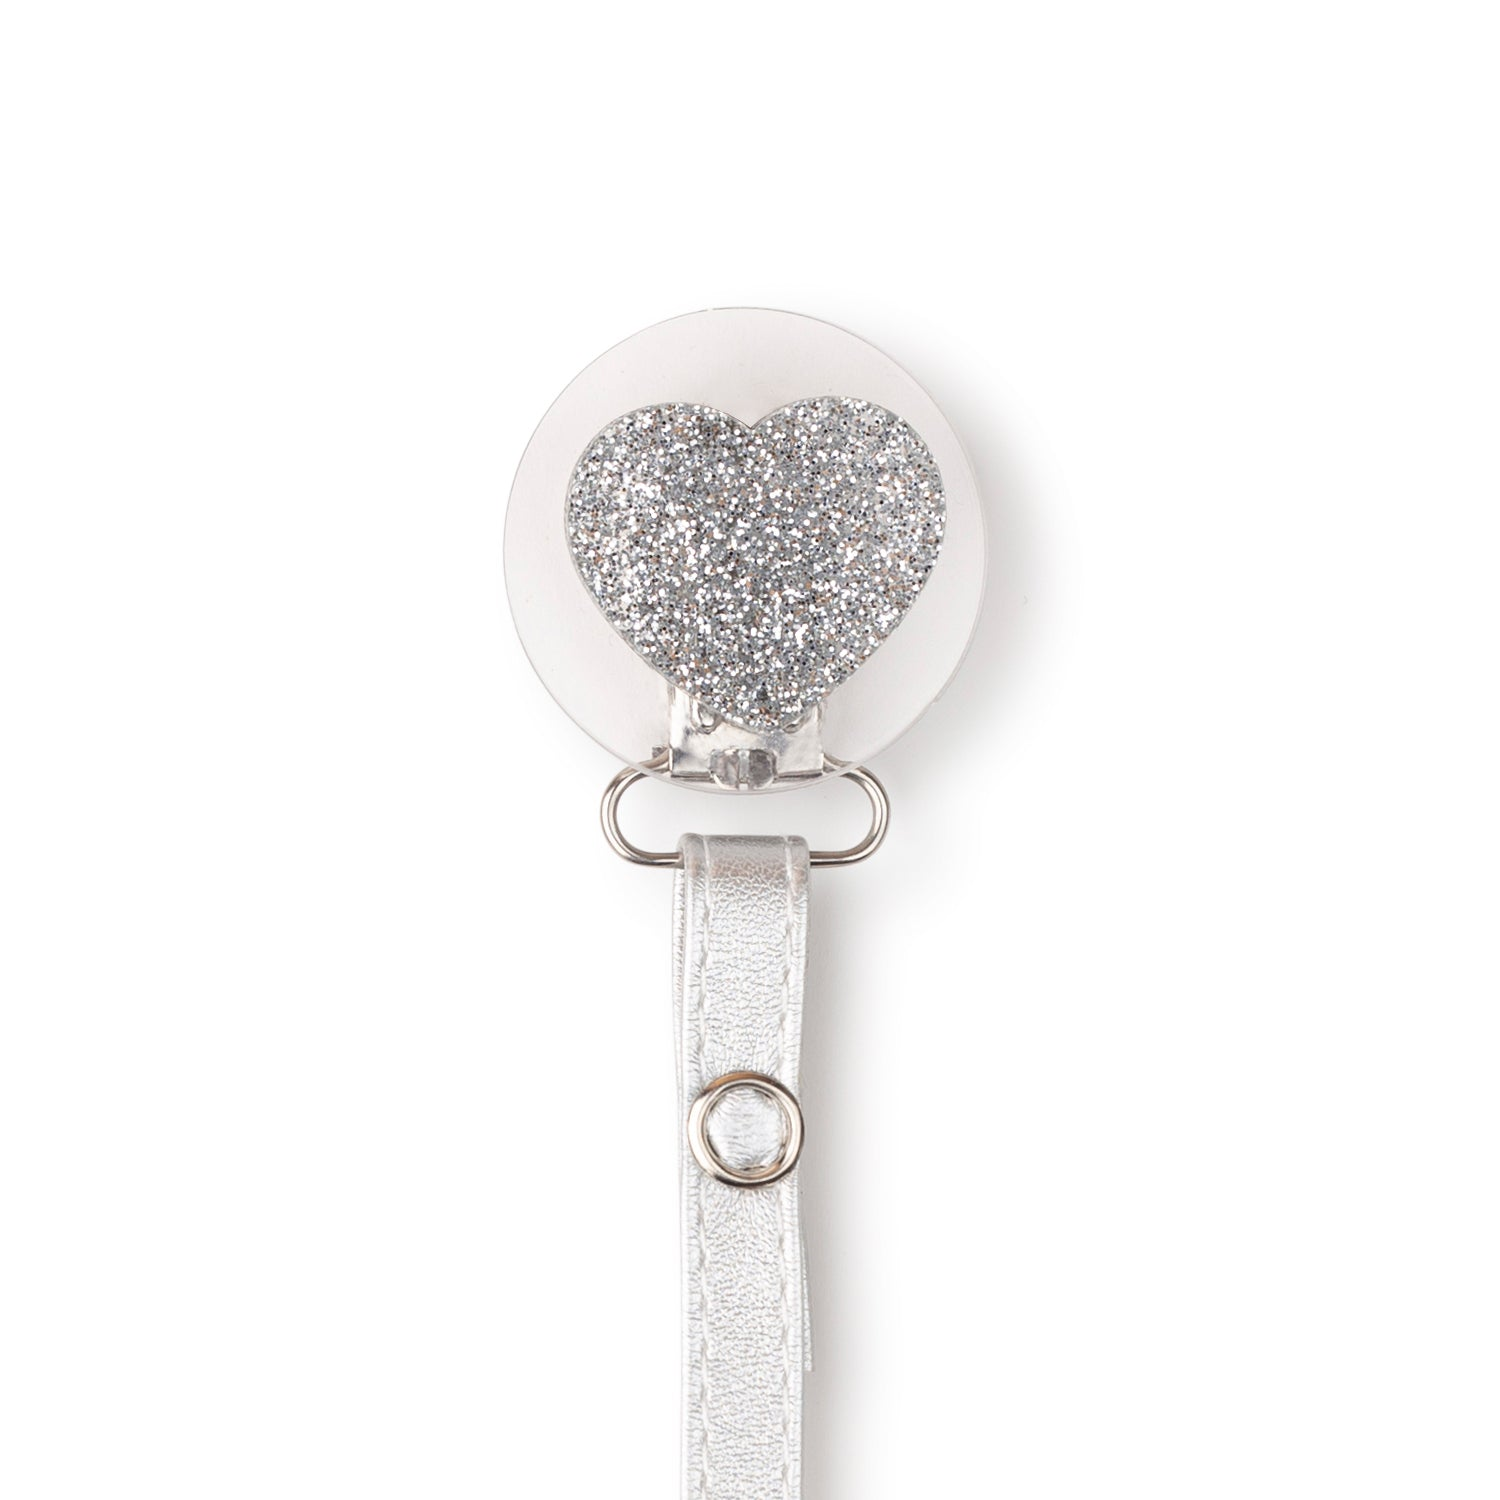 Classy Paci Clear with Silver sparkle heart pacifier clip